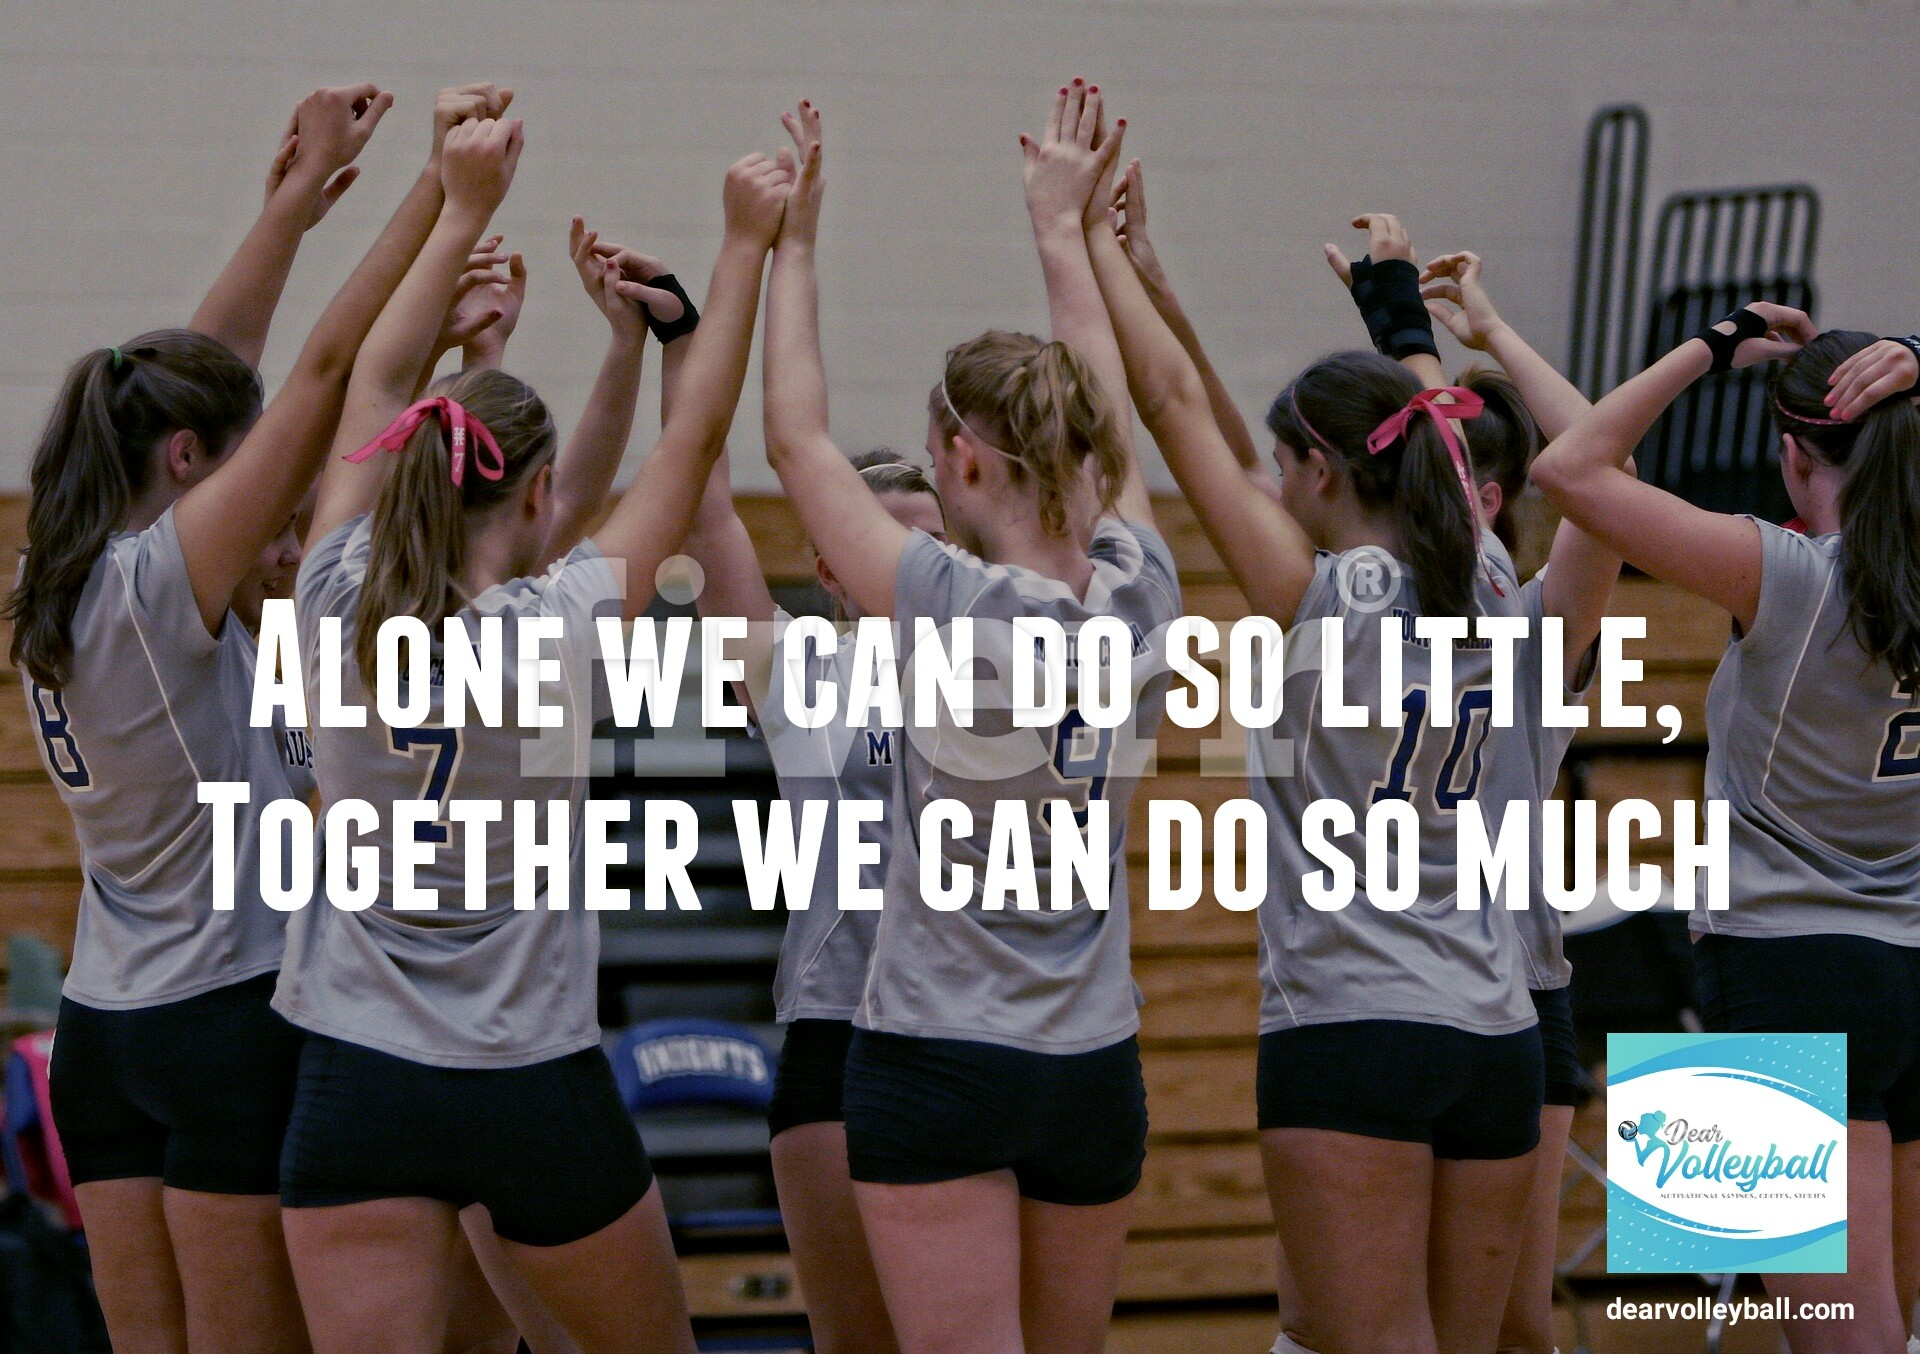 Inspirational volleyball stories and more on DearVolleyball.com